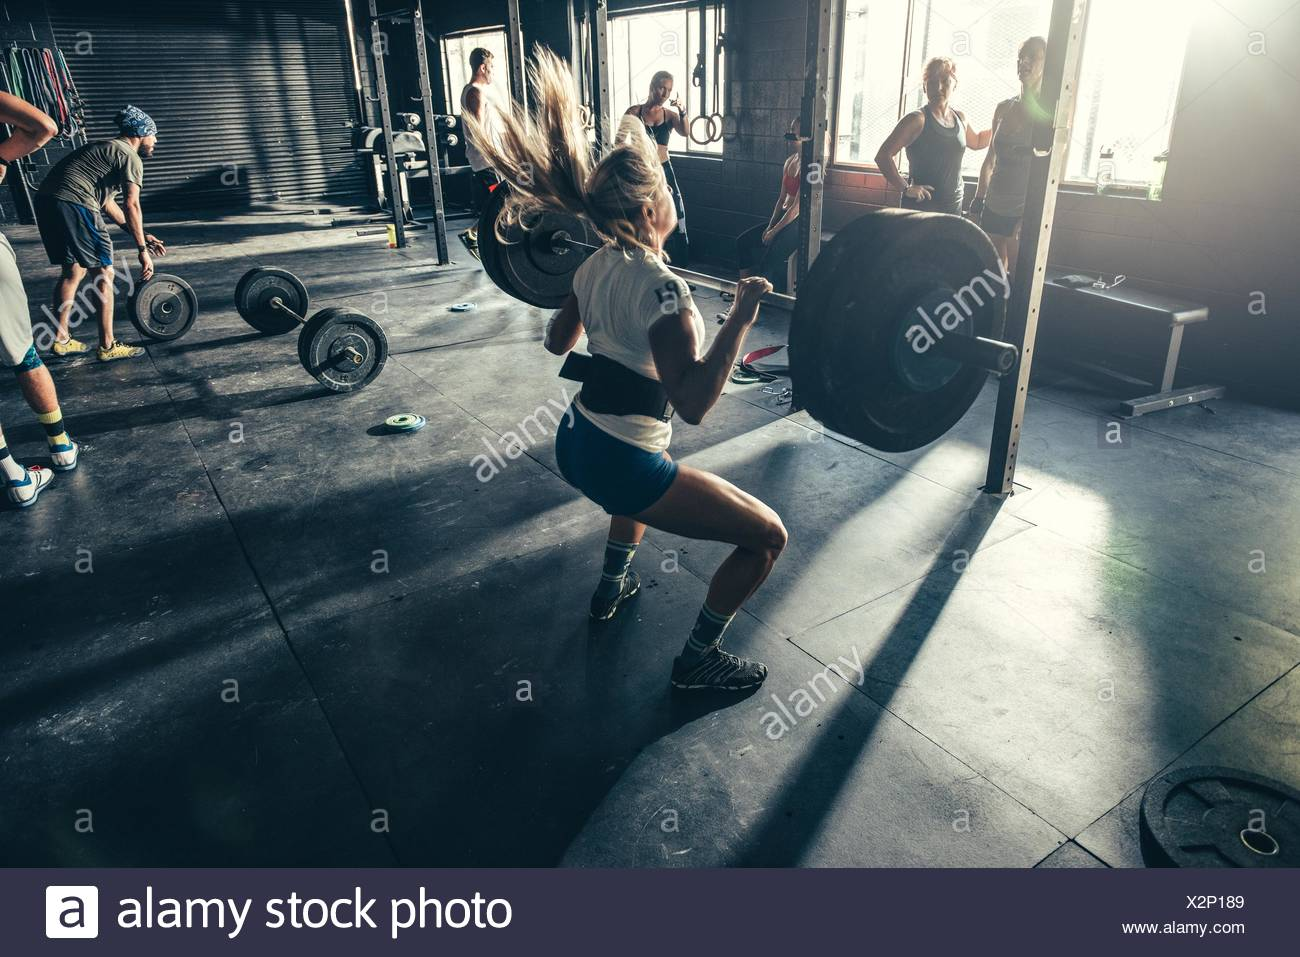 Woman training with barbell in gymStock Photo